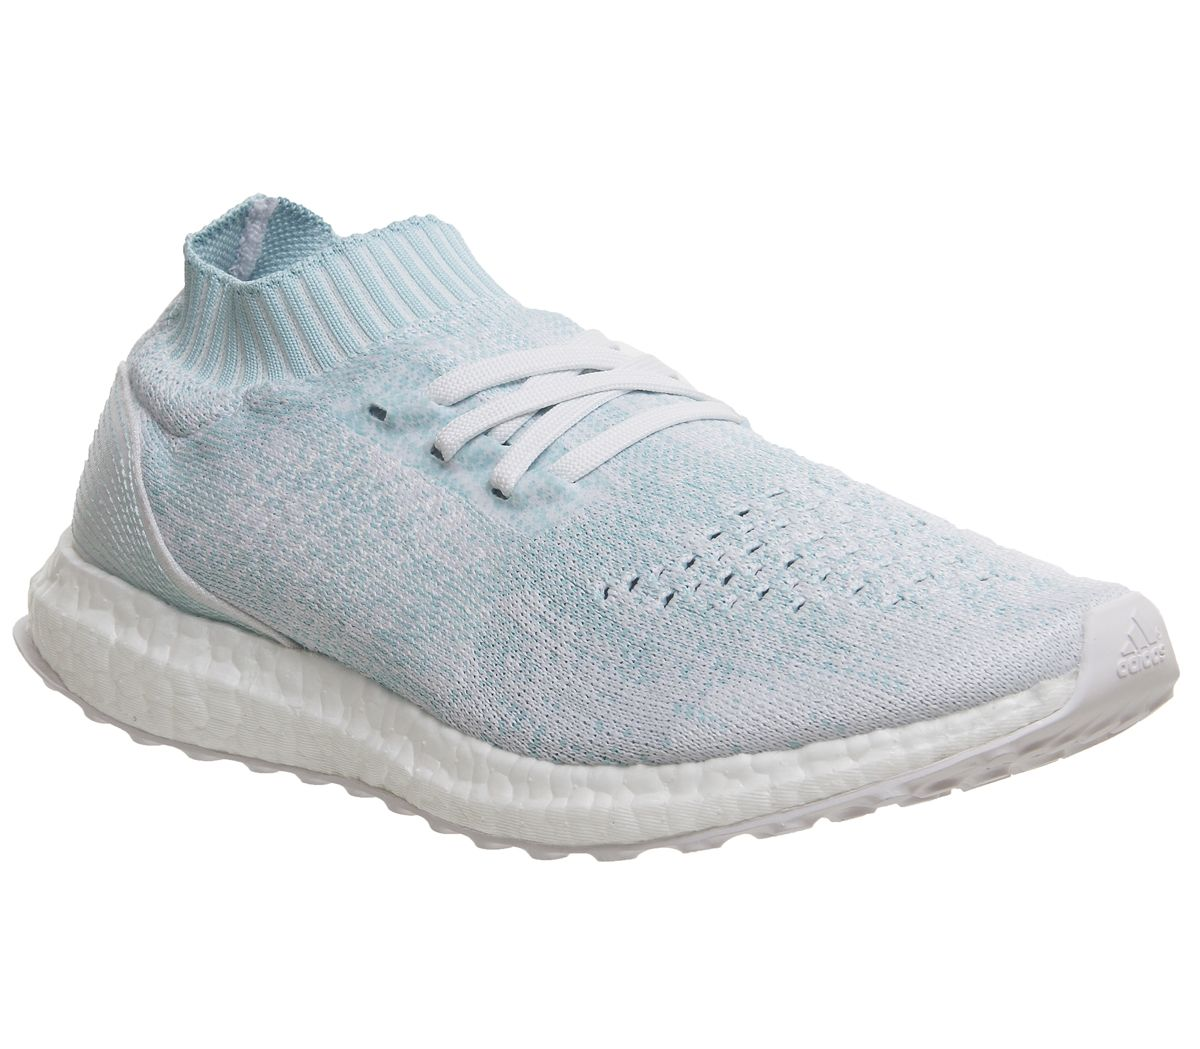 c9f6f17dcf9fb adidas Ultraboost Ultra Boost Uncaged Trainers Ice Blue White Parley ...